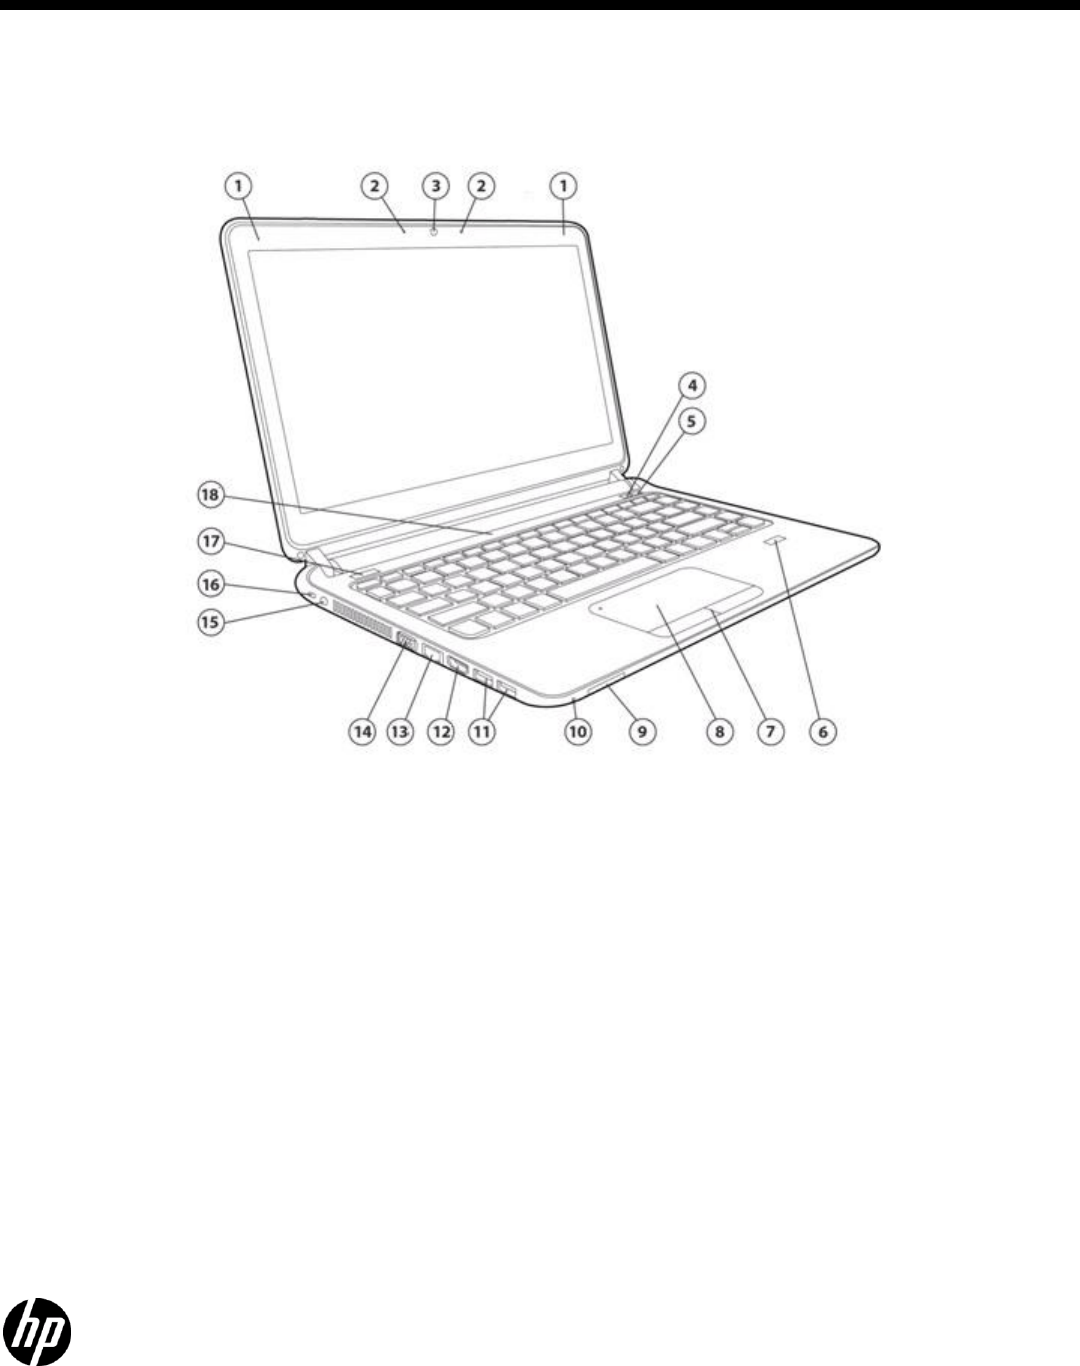 User manual HP ProBook 440 G2 (31 pages)